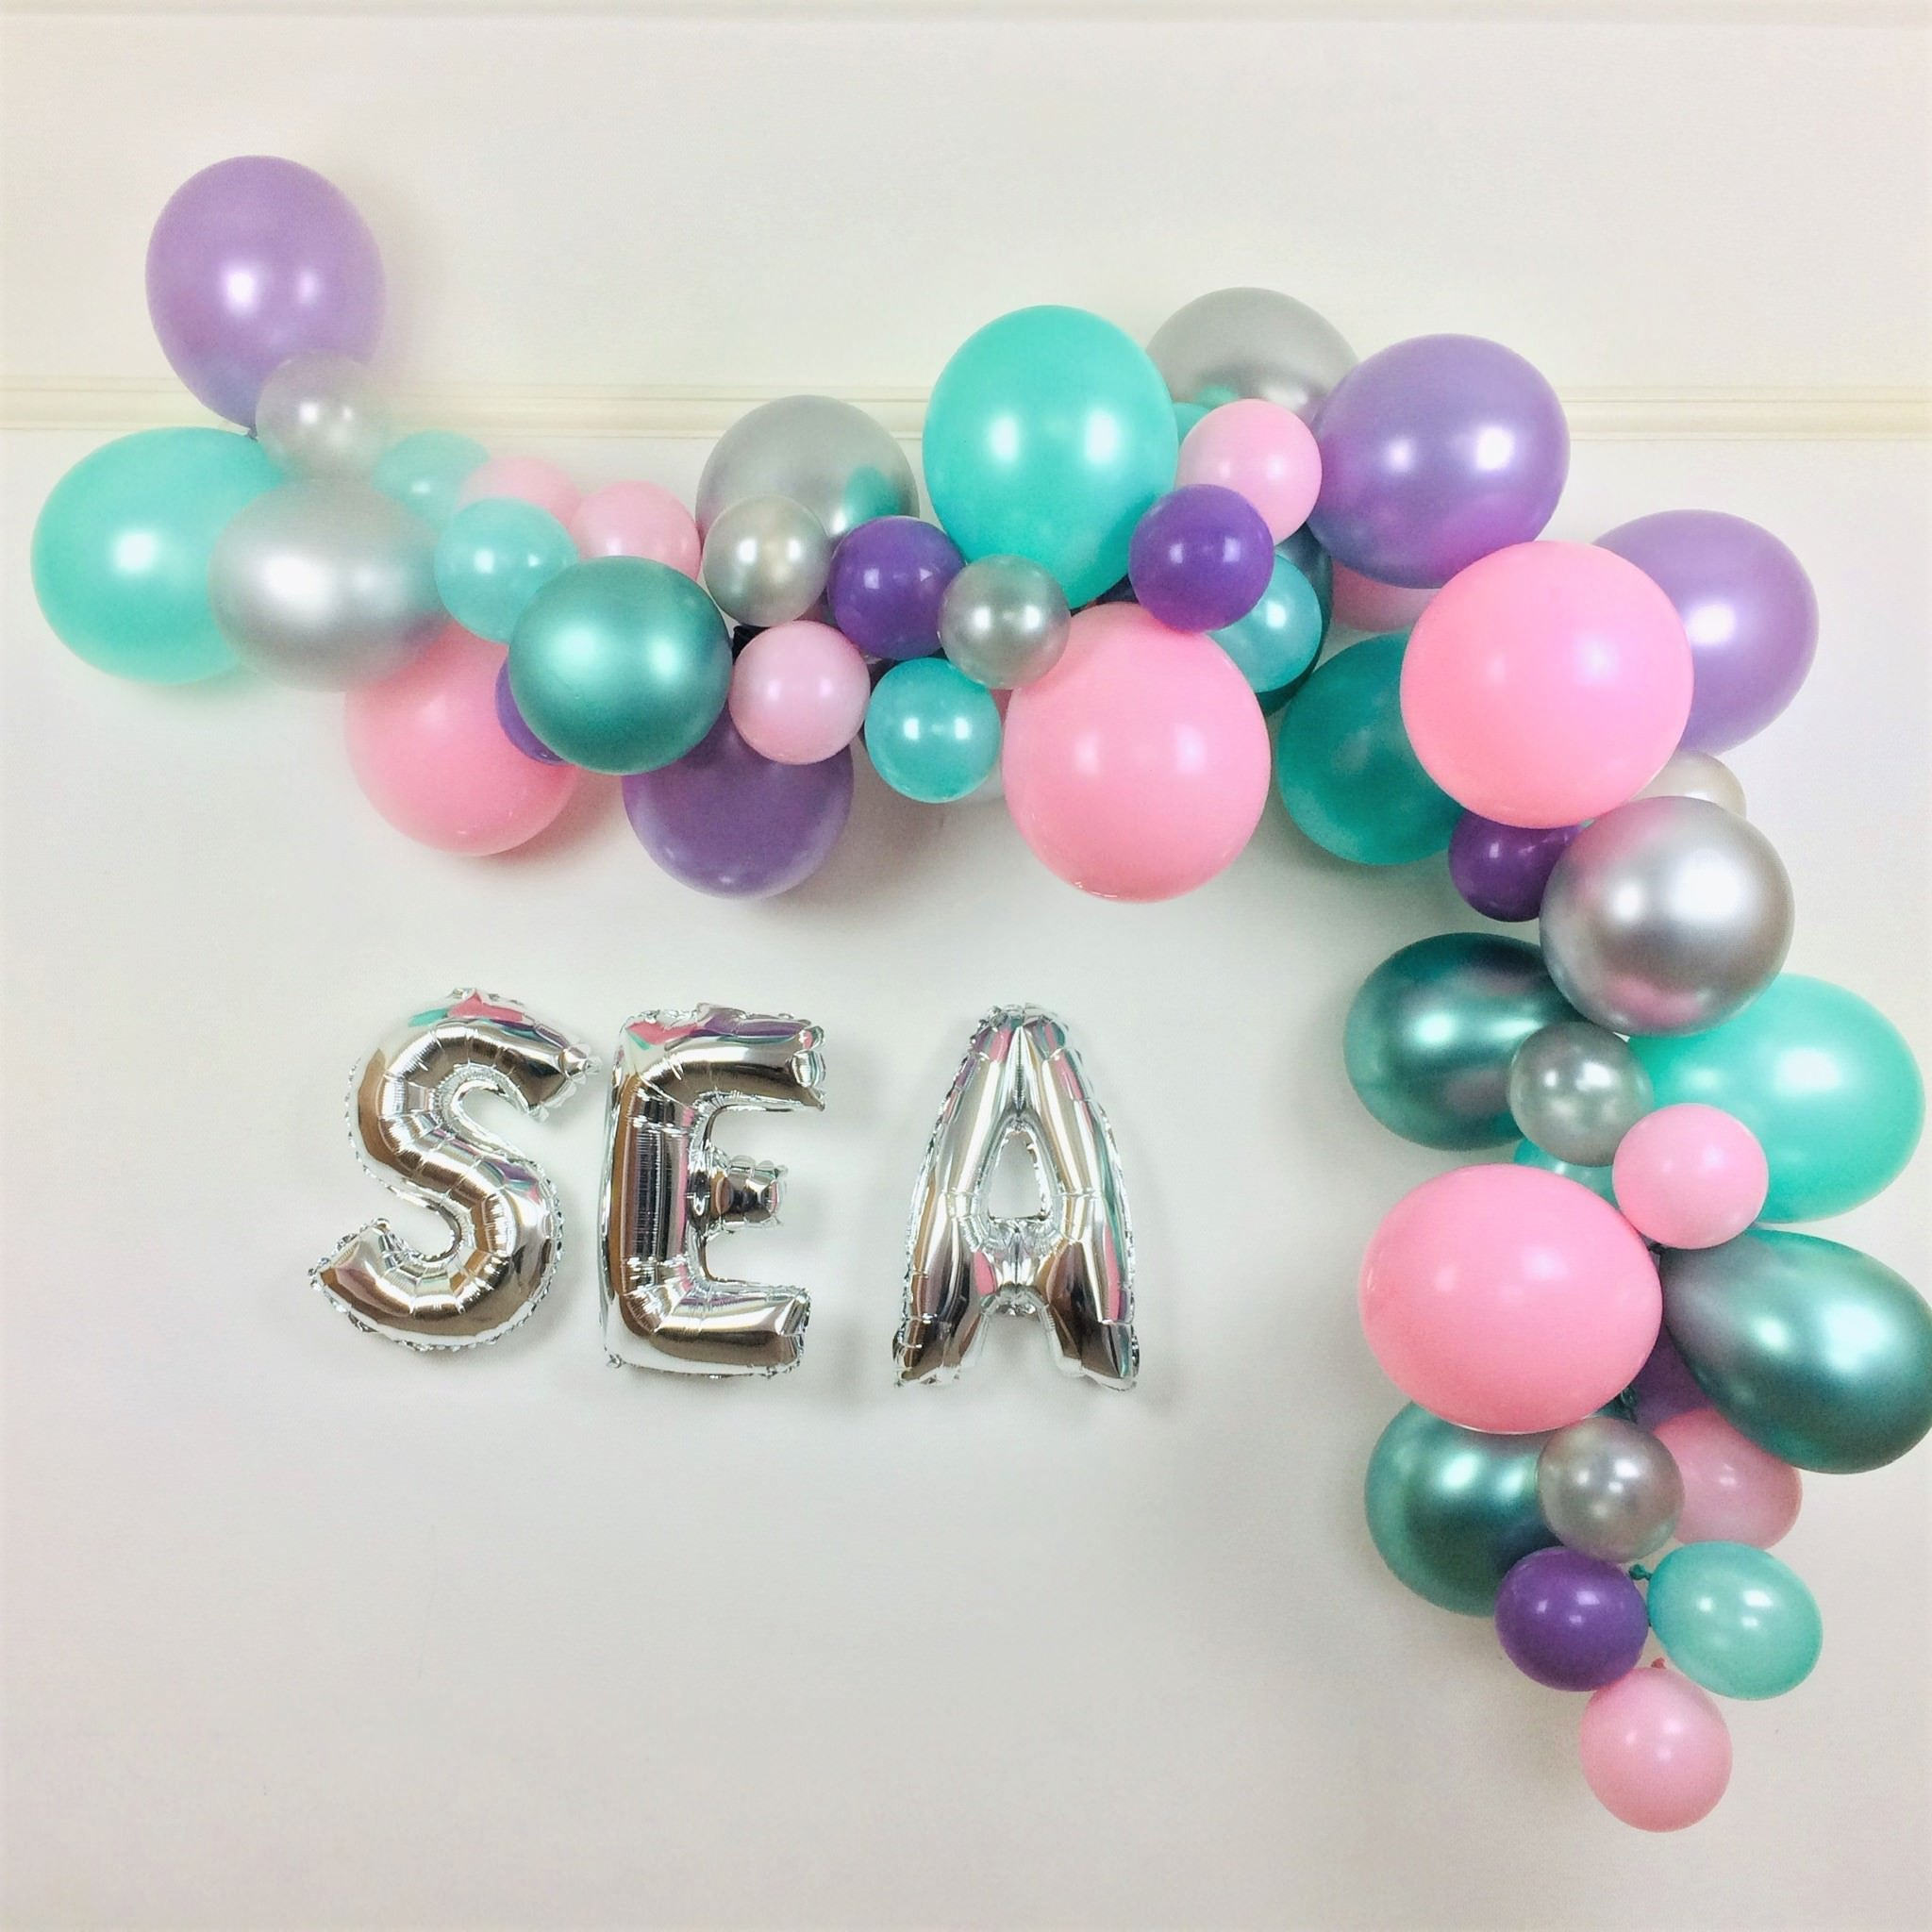 Mermaid Dreams Balloon Cloud Kit I Mermaid Party Decoration I My Dream Party Shop I UK